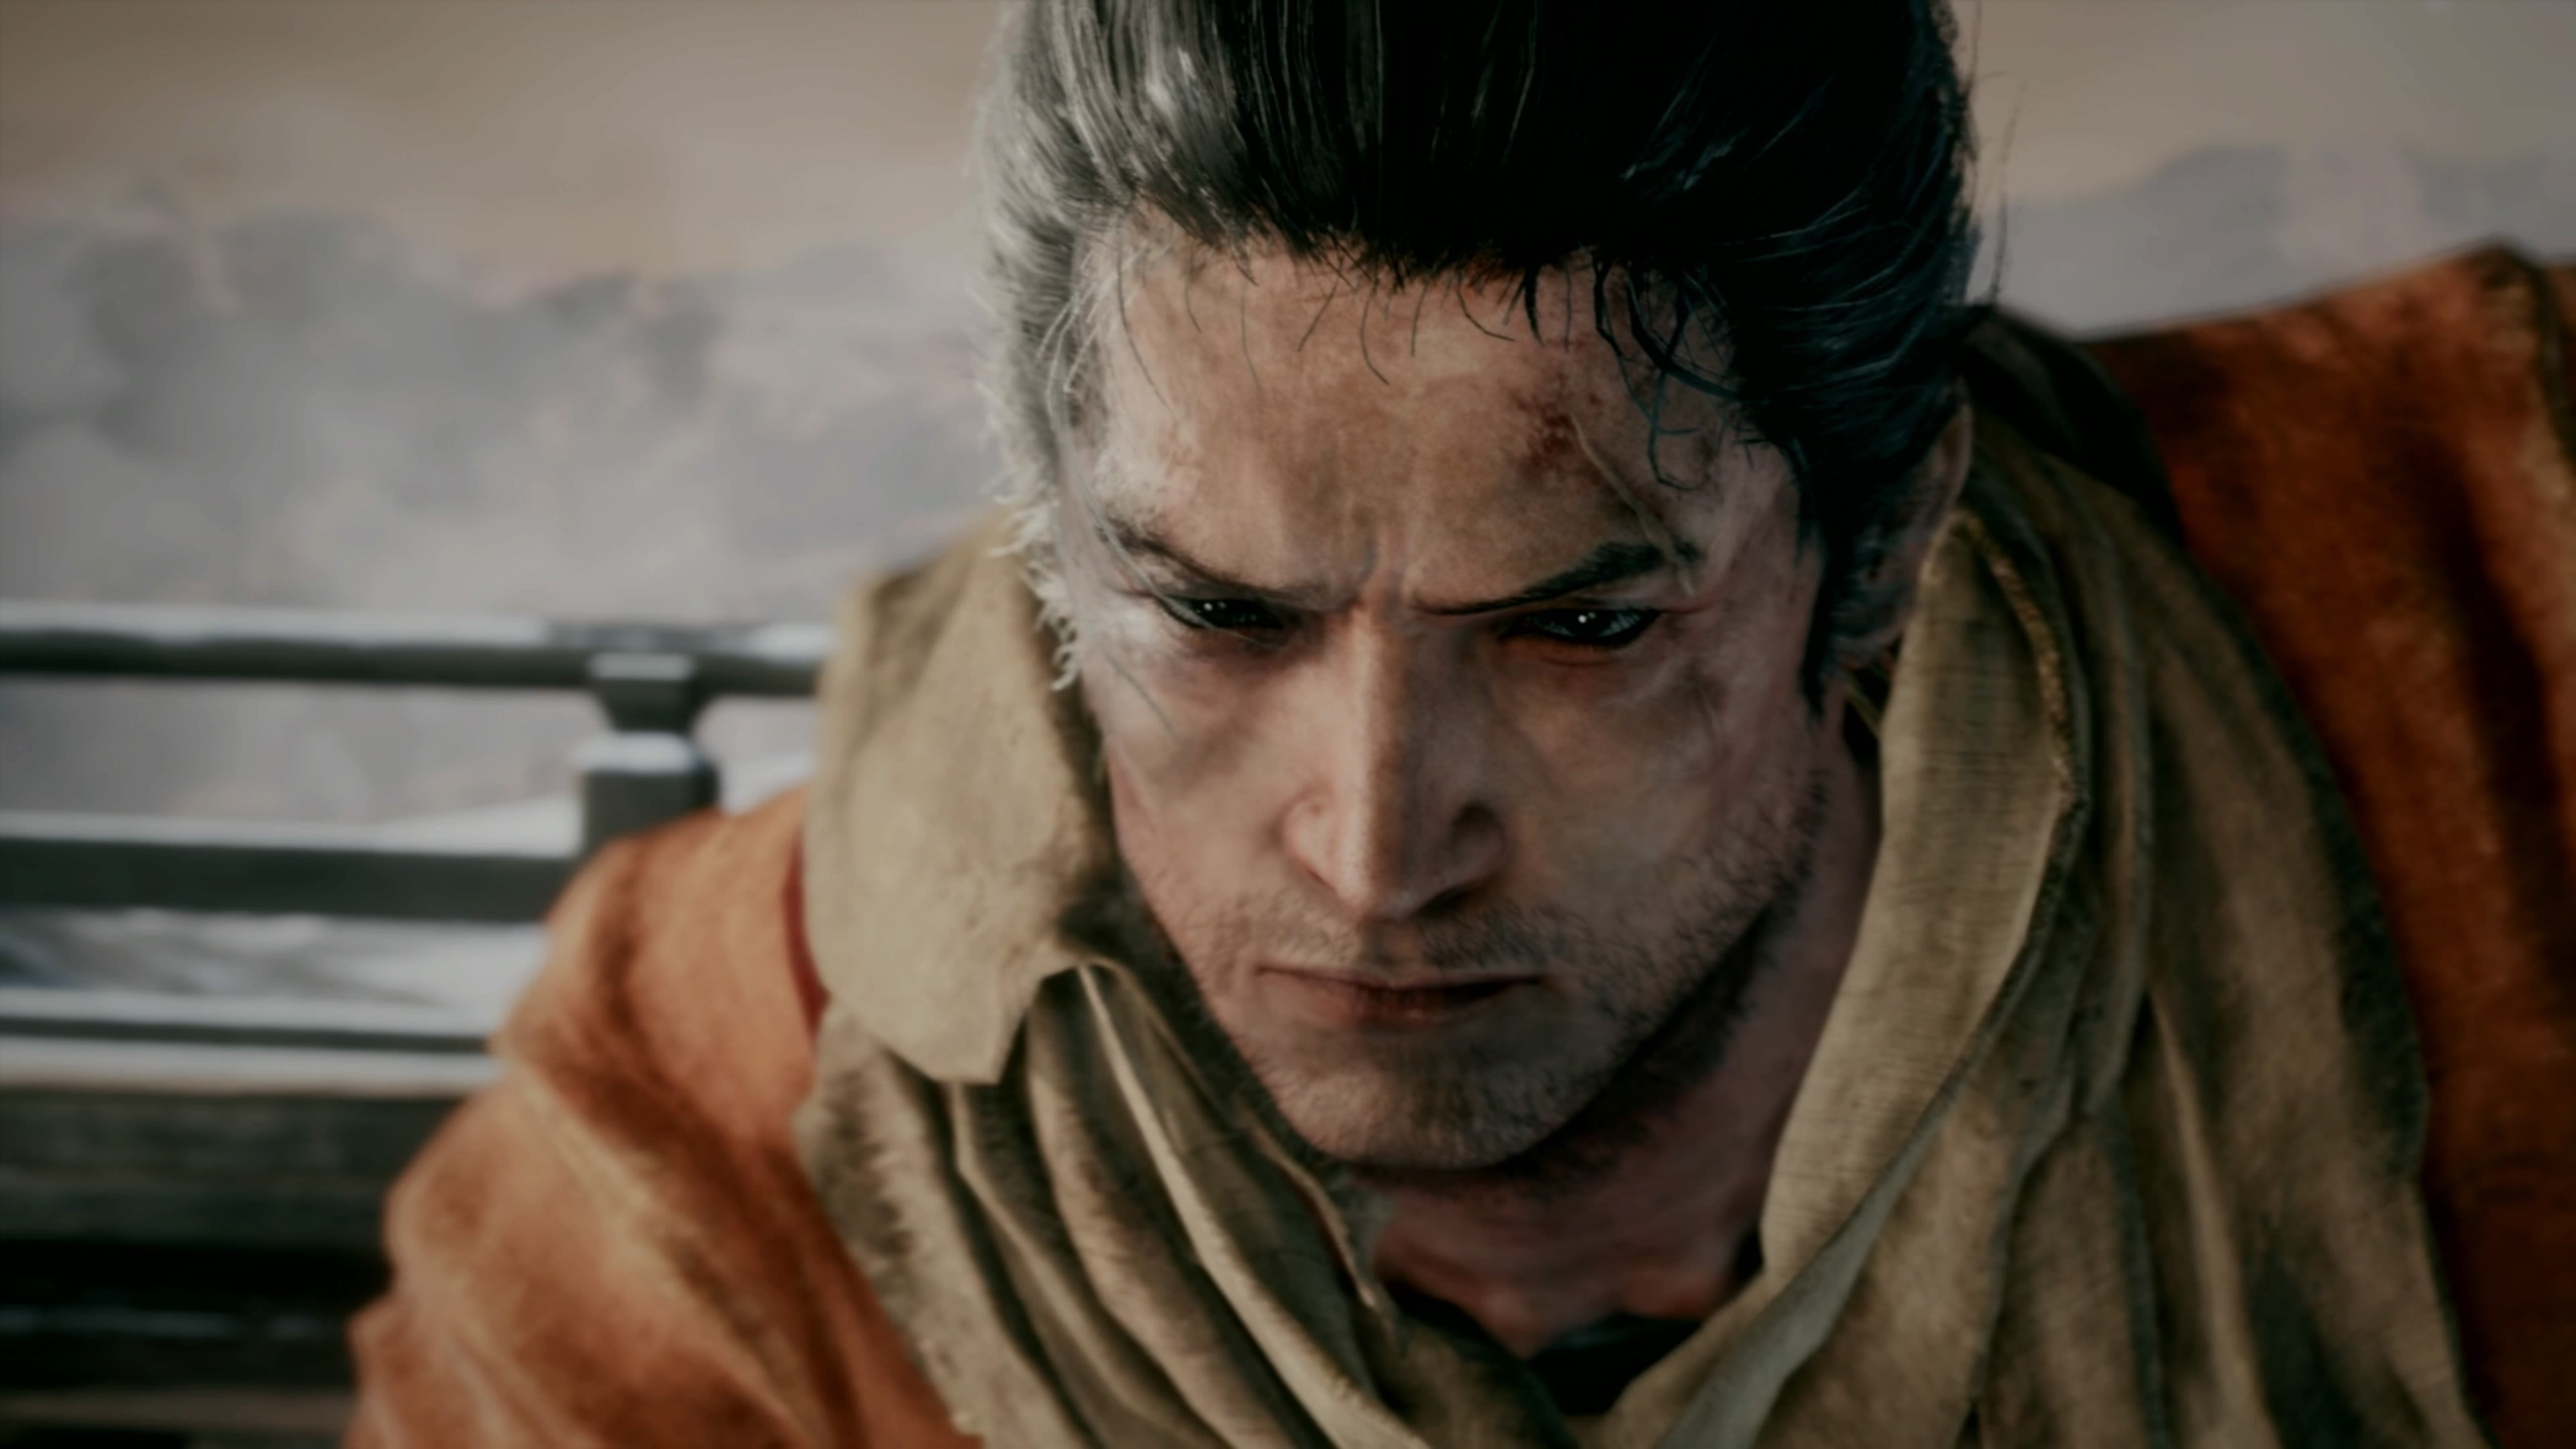 Tips For Playing Sekiro: Shadows Die Twice